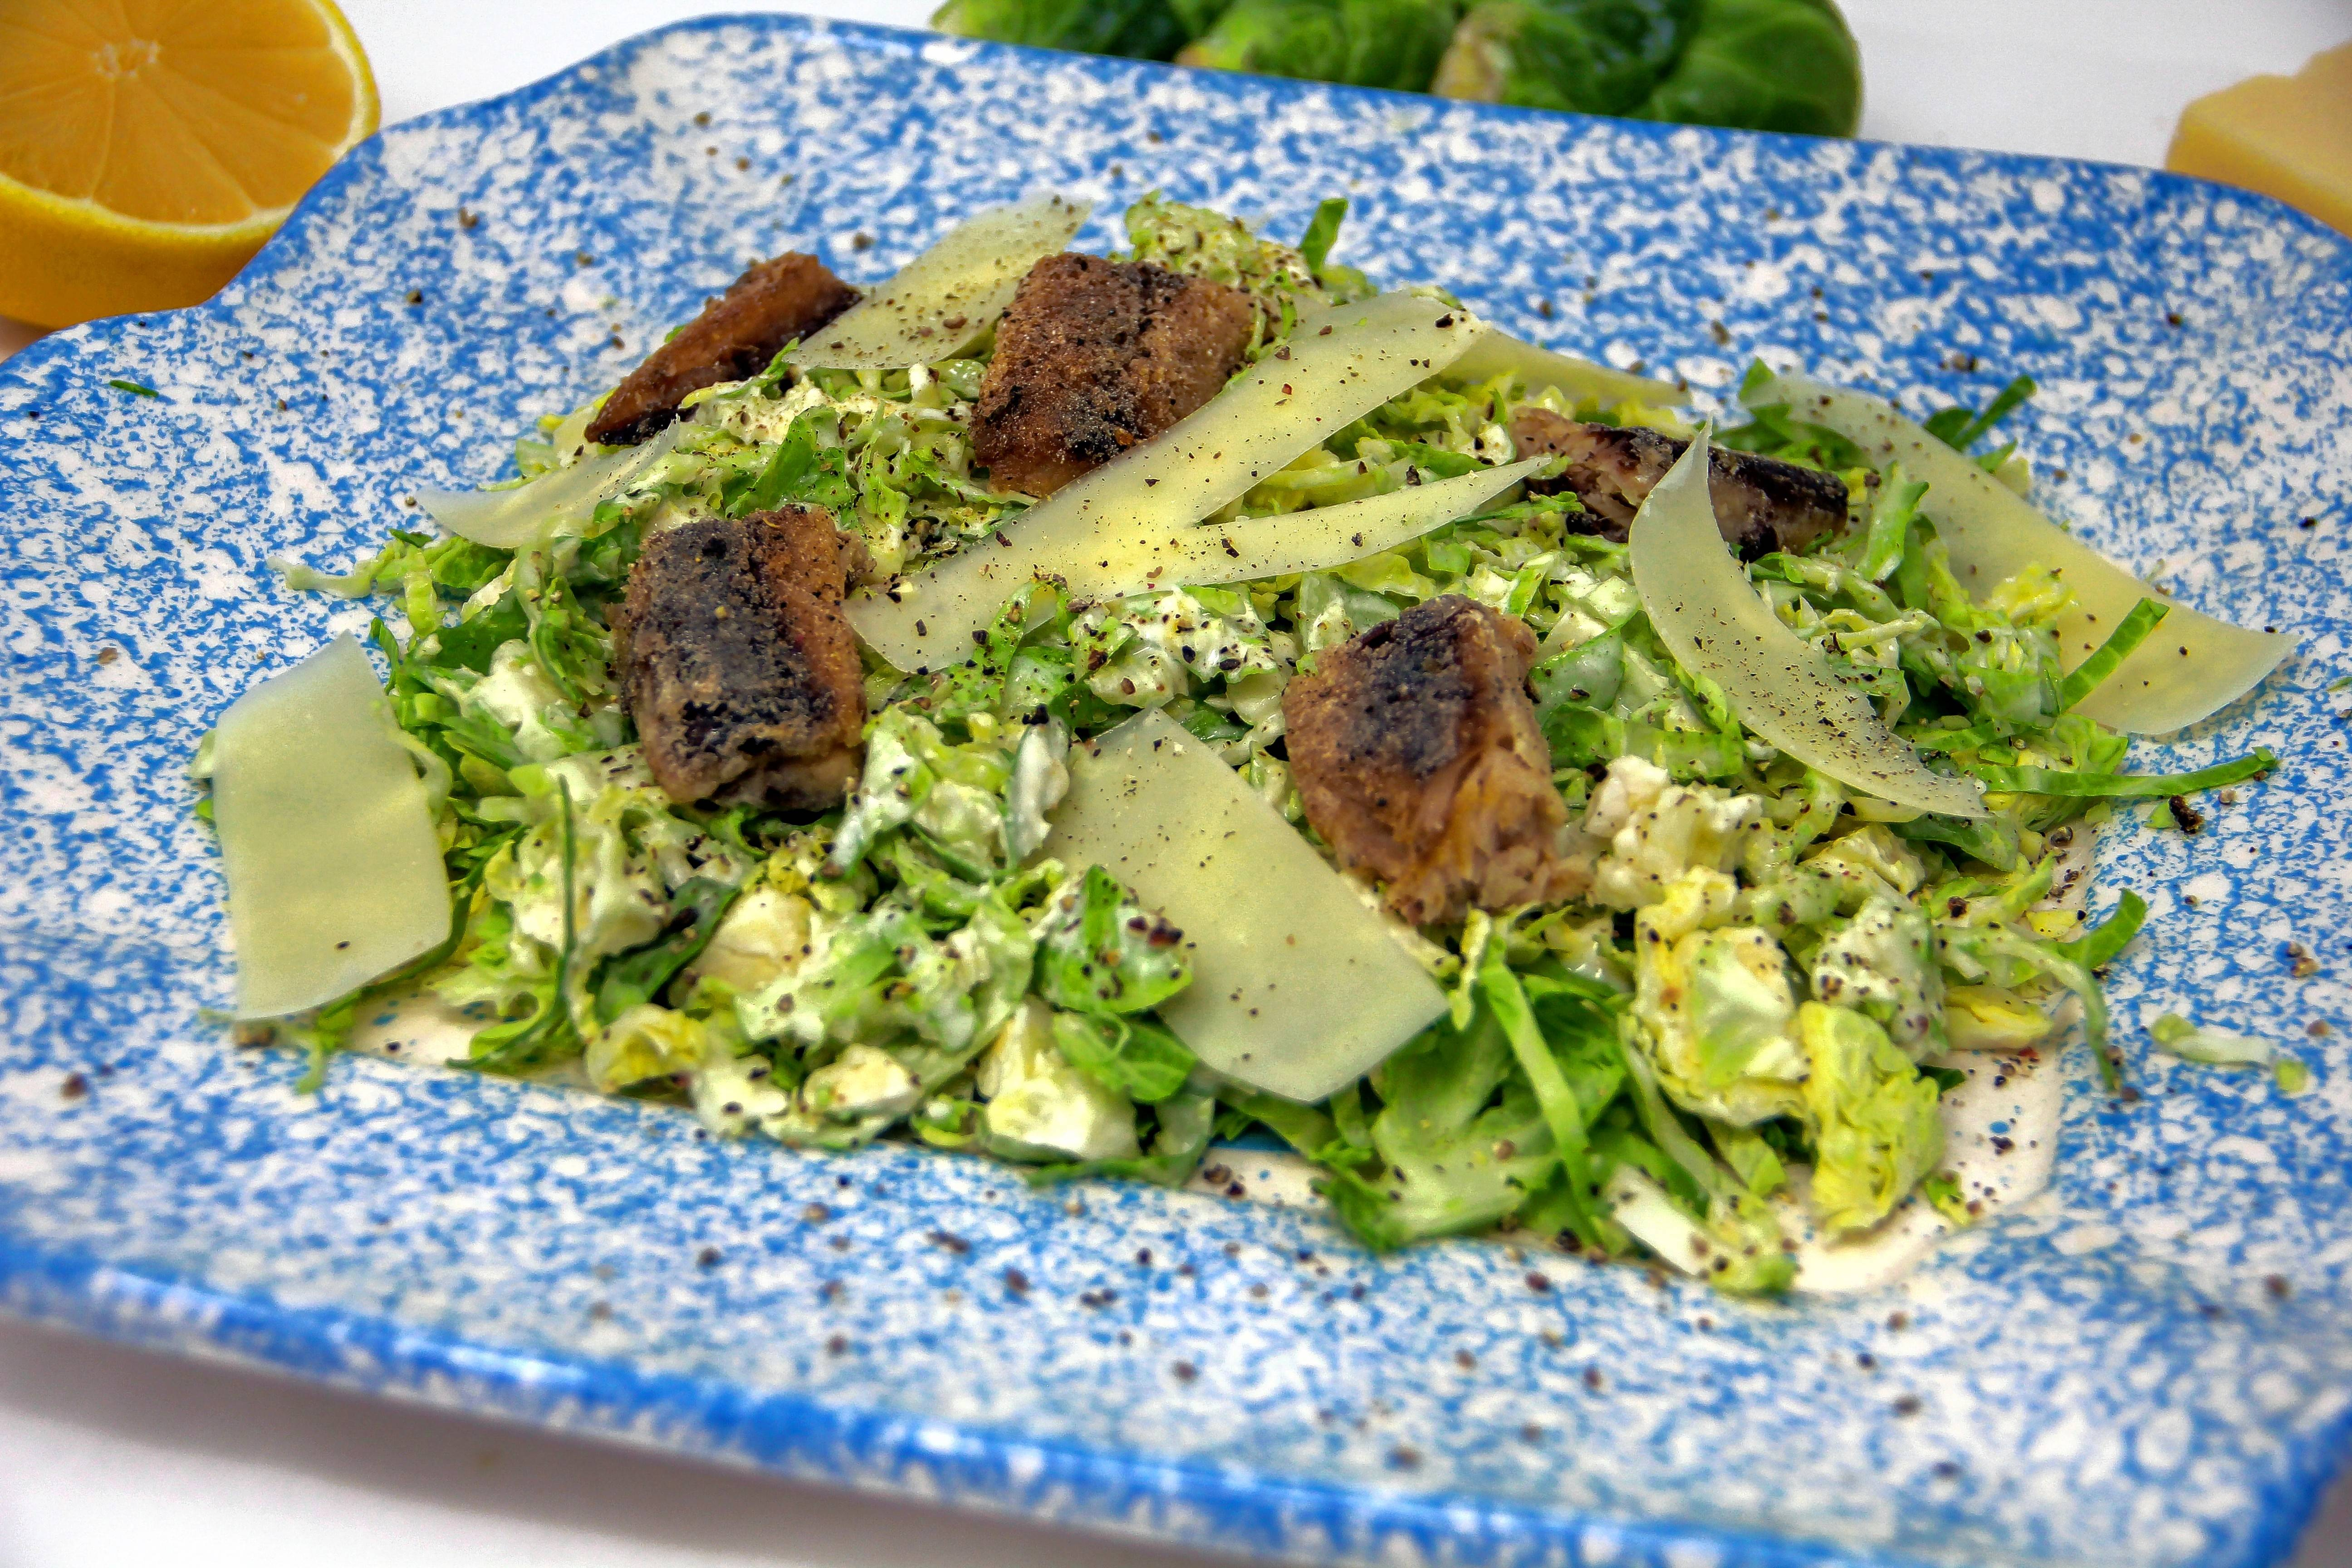 Brussels sprouts Caesar salad uses Brussels sprouts instead of romaine, a little mayo instead of raw egg, sardines as croutons and no anchovy paste.